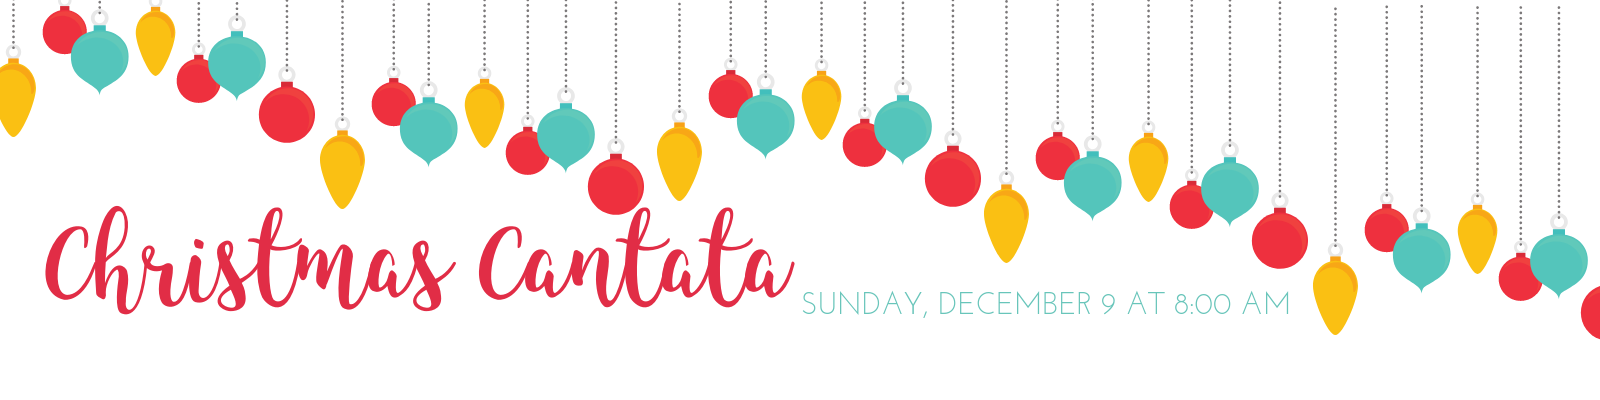 Come listen to the ecumenical choir cantata perform at 9 am on December 9th!